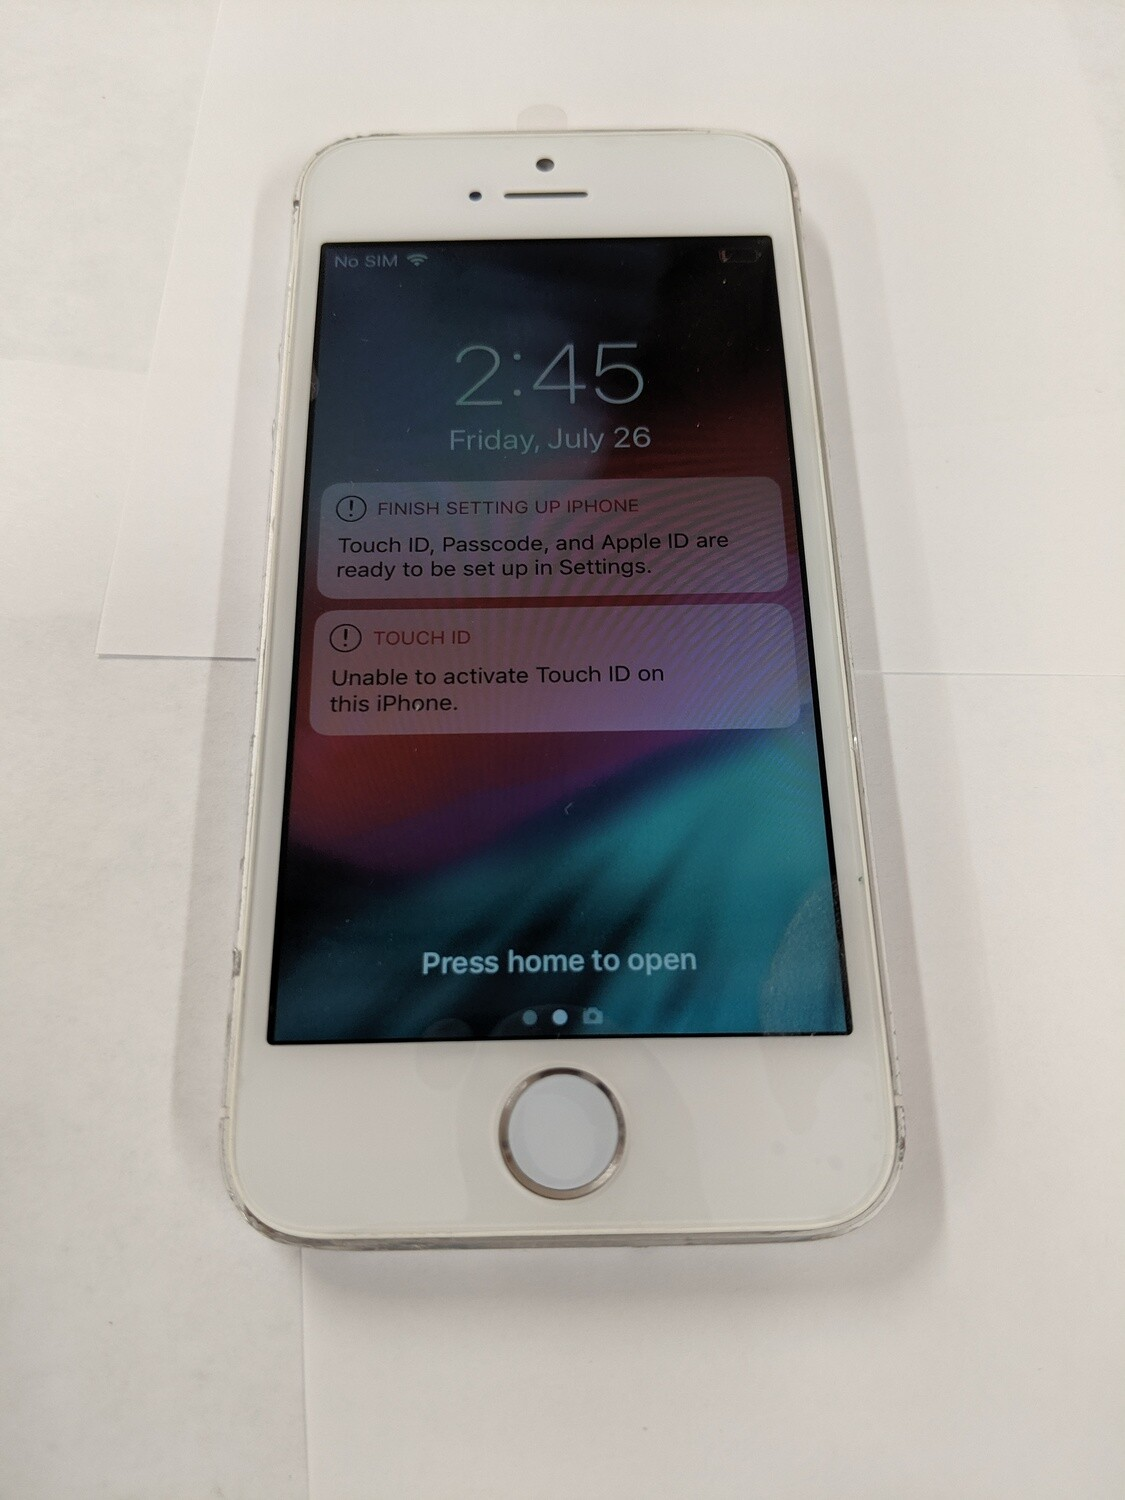 iPhone 5S (tracfone)